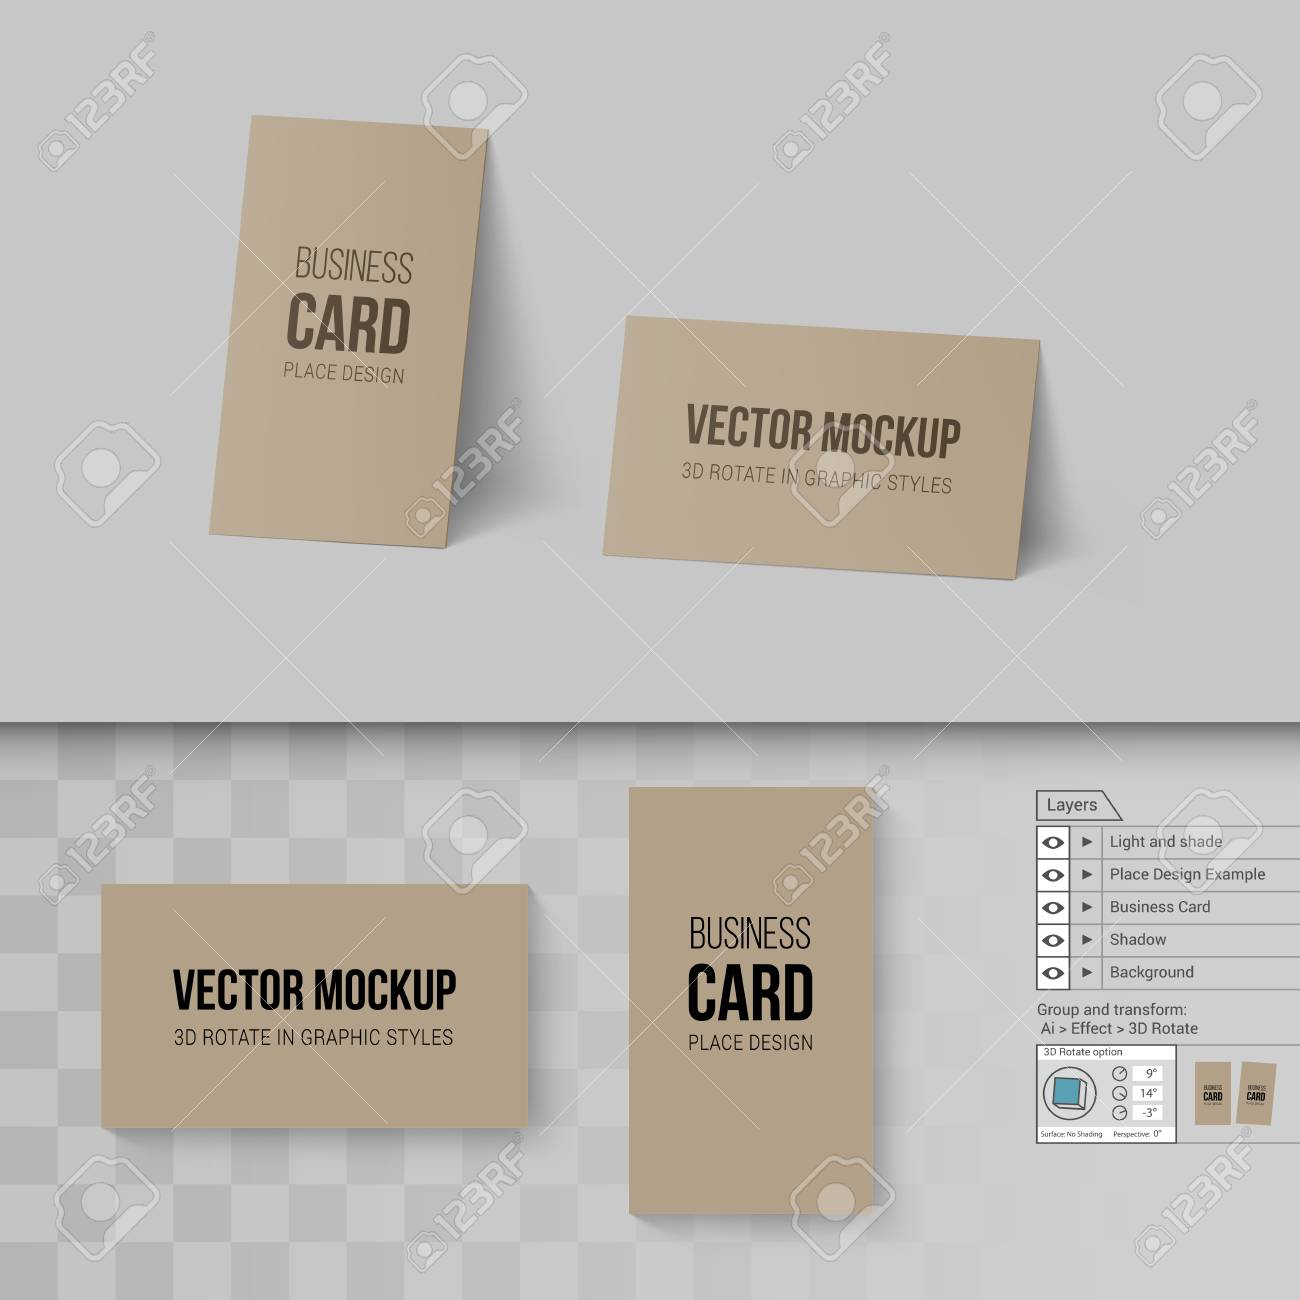 Brown Business Cards Template. Mock Up With 21D Rotate Options On Throughout Transparent Business Cards Template